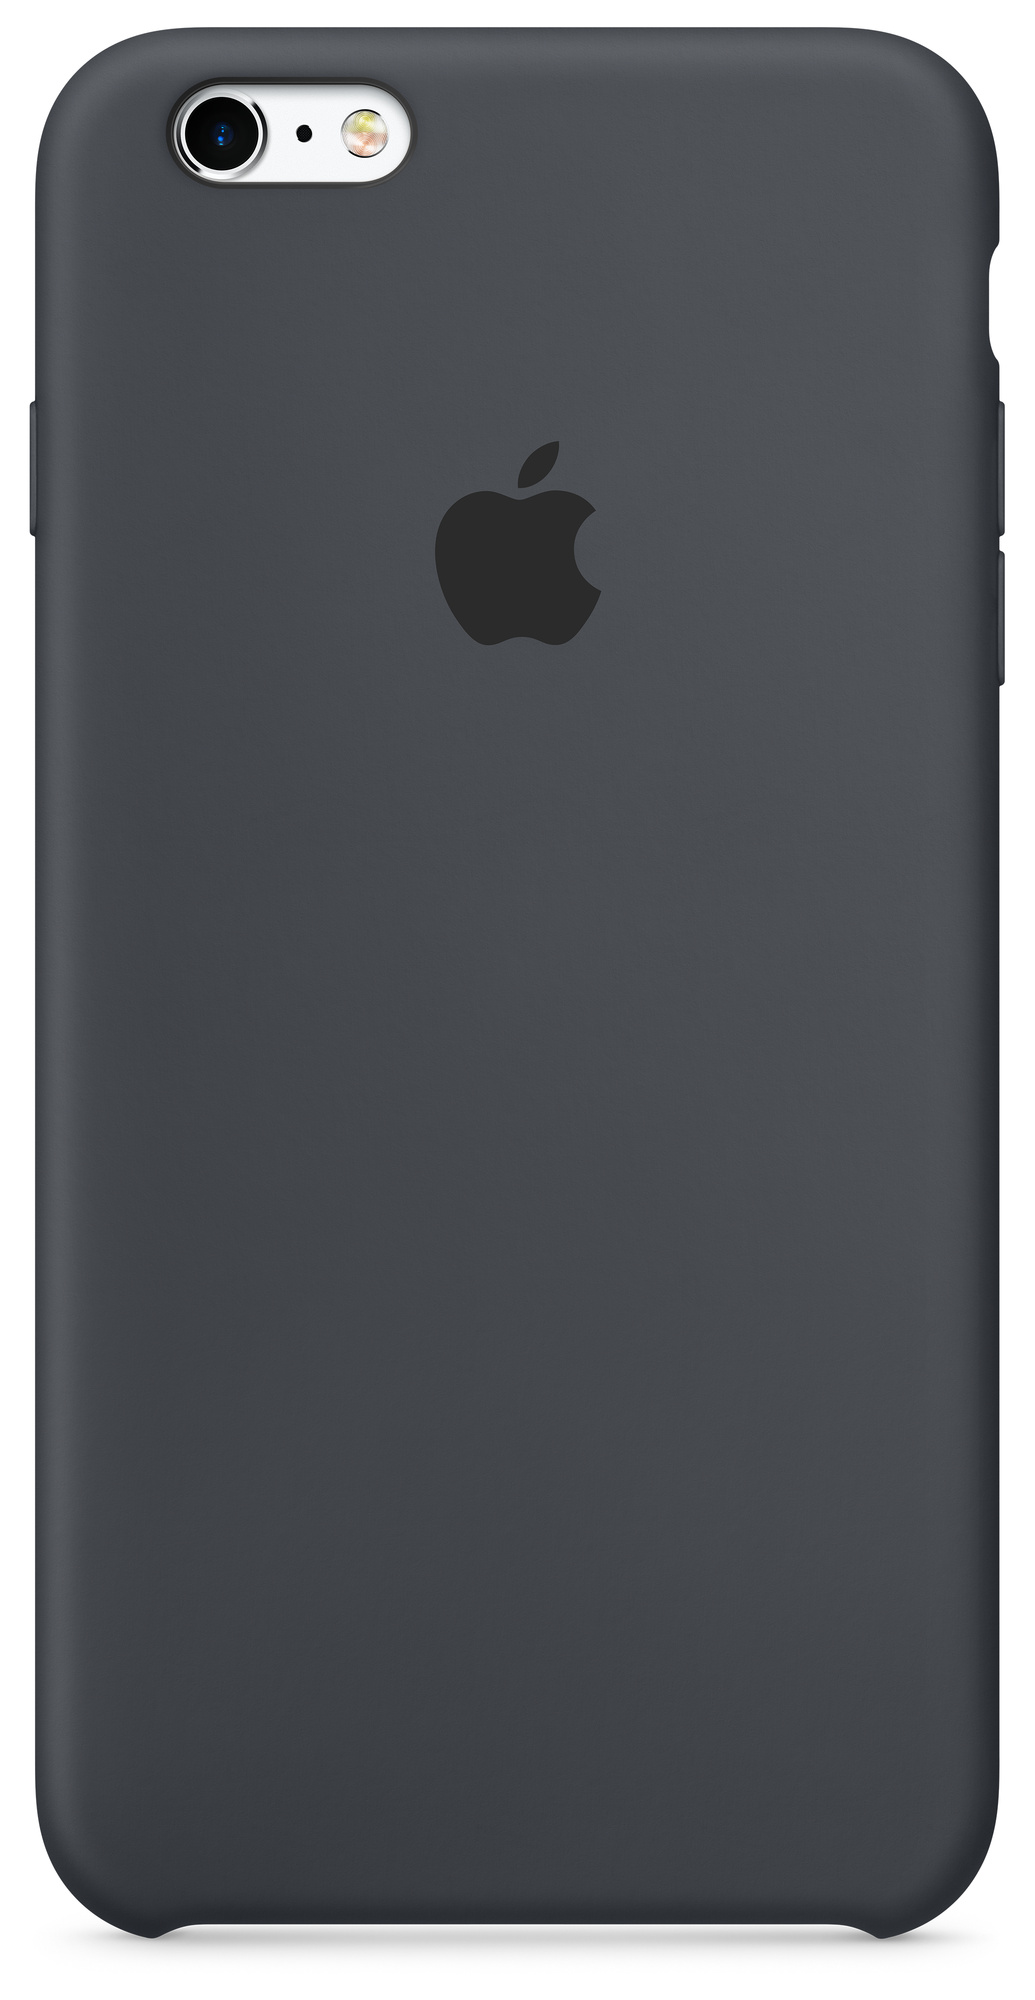 best website 2b672 4c2f1 iPhone 6 Plus / 6s Plus Silicone Case - Charcoal Gray